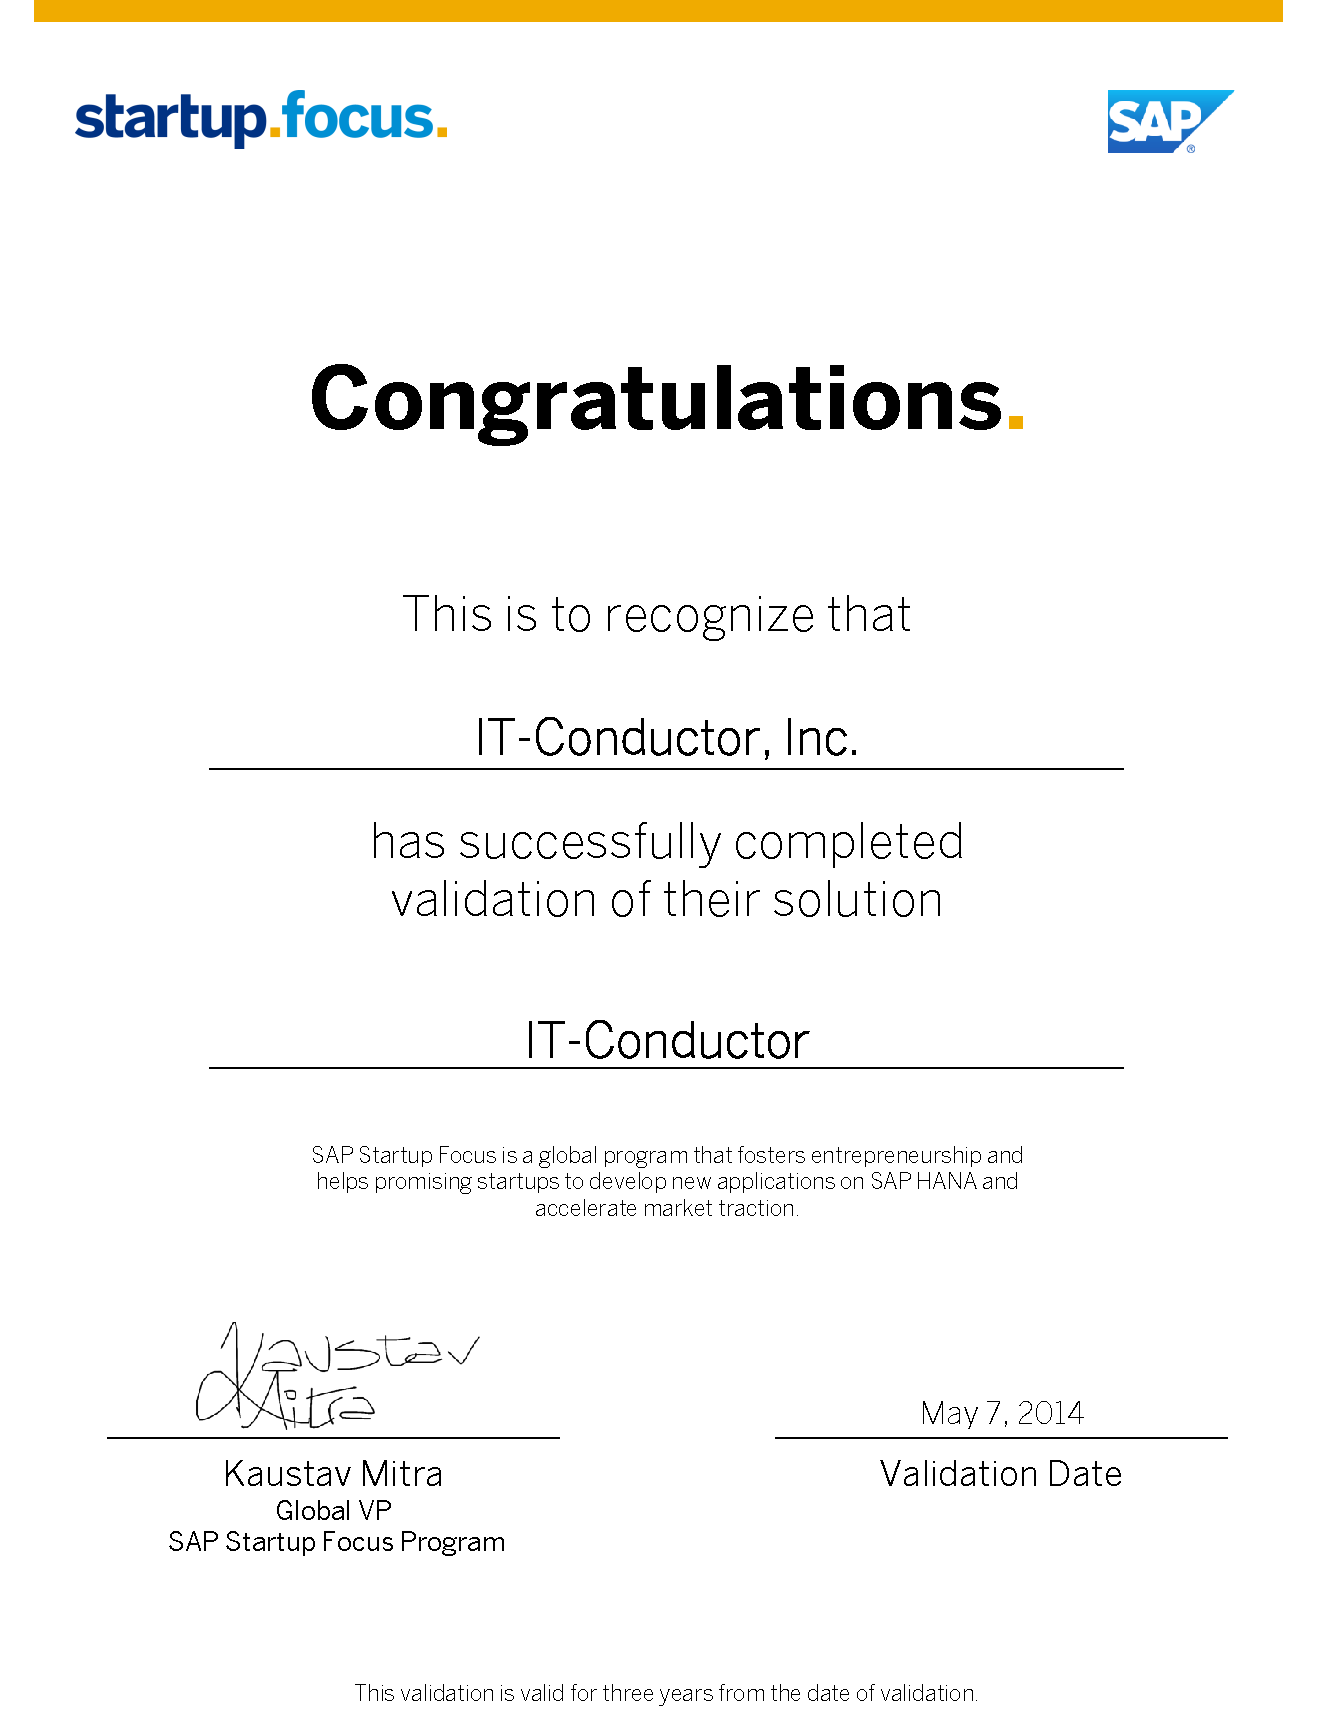 SAP_SFP_Validation-Certificate-IT-ConductorInc-May-7-2014